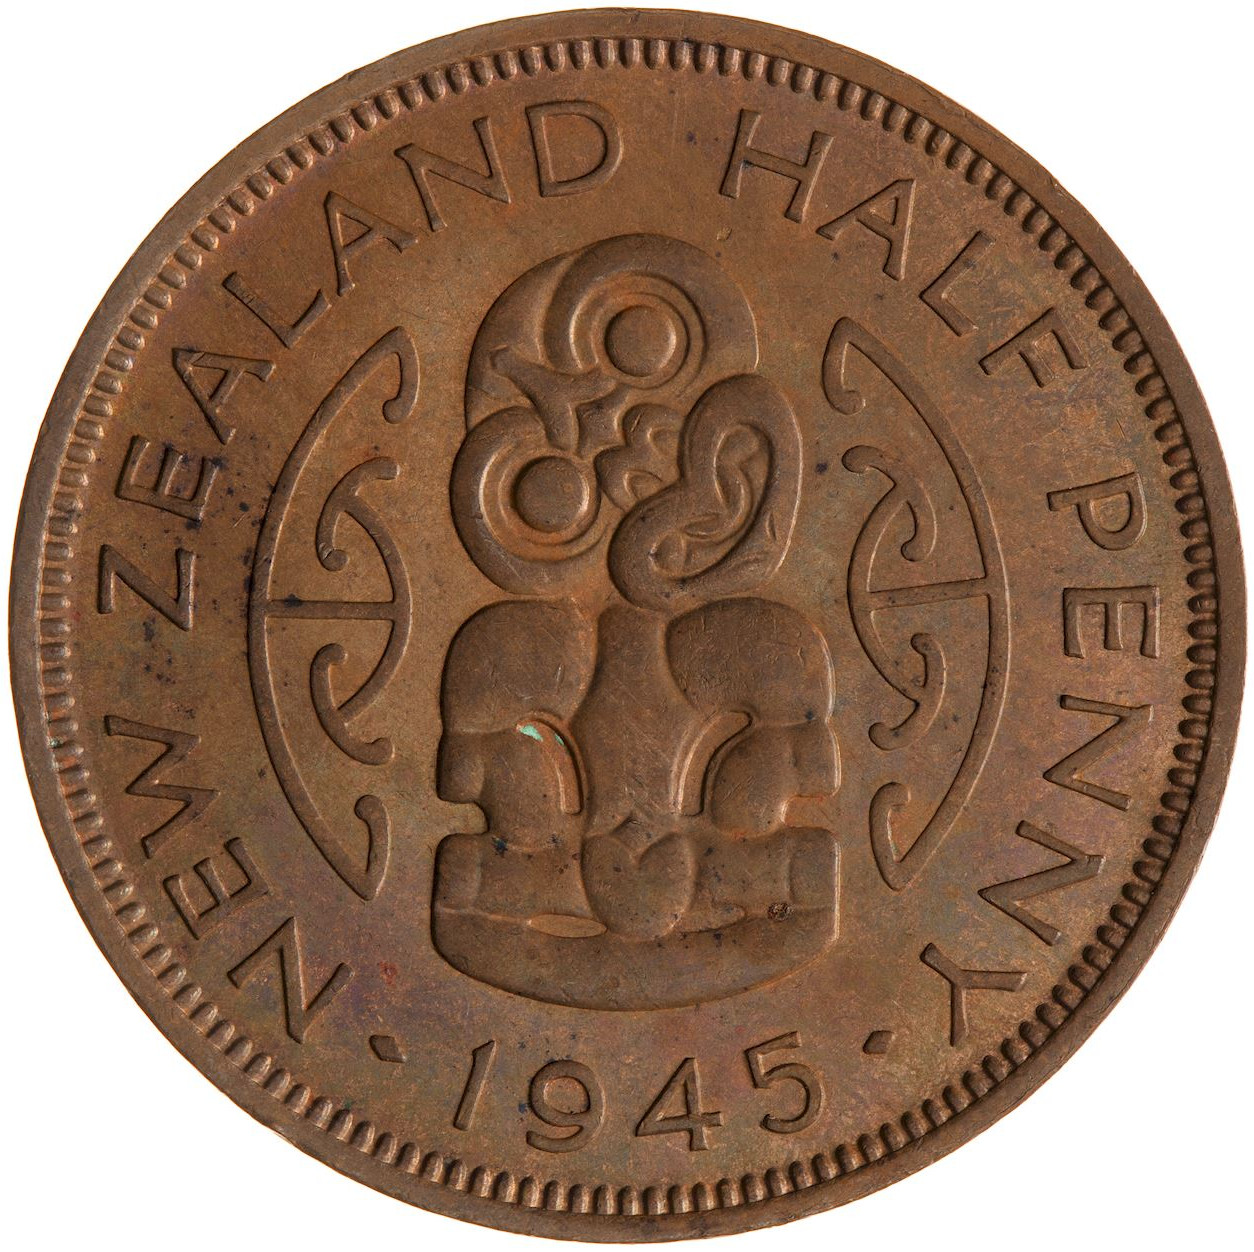 Halfpenny 1945: Photo Coin - 1/2 Penny, New Zealand, 1945